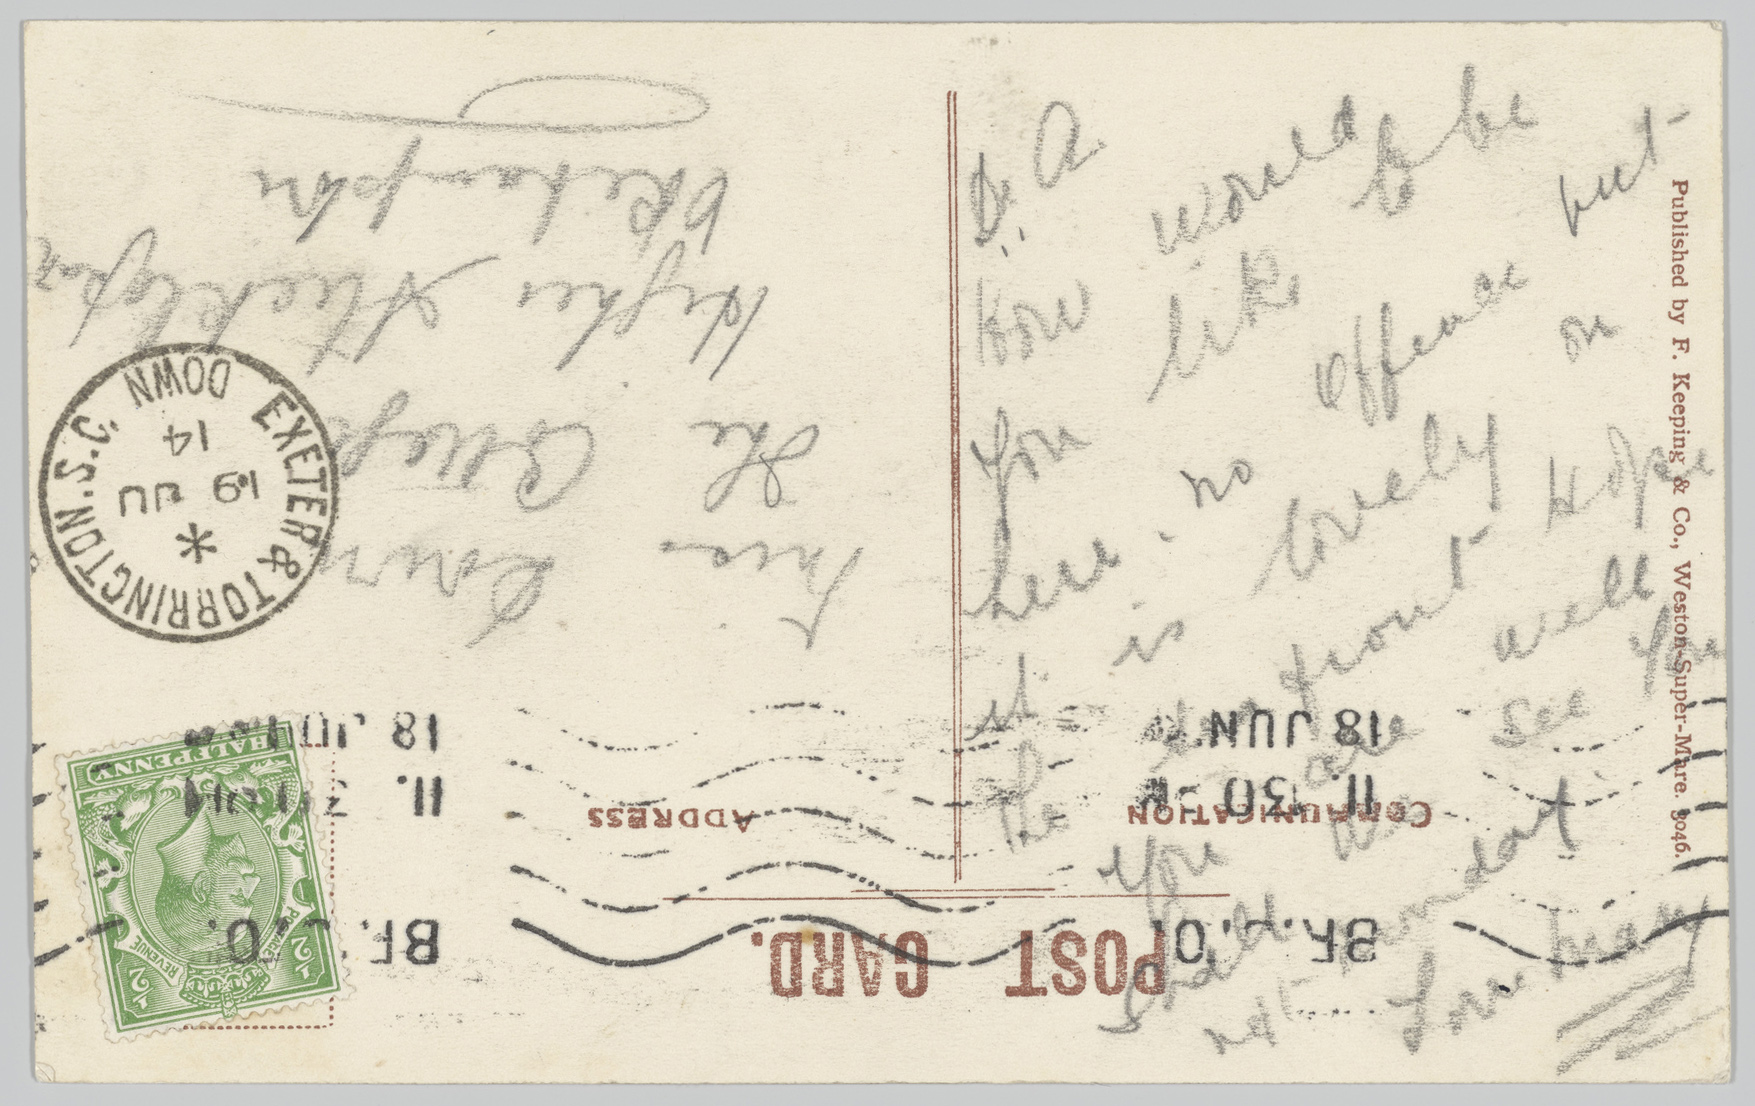 Reverse of the postcard with a hand written message upside down from the address.